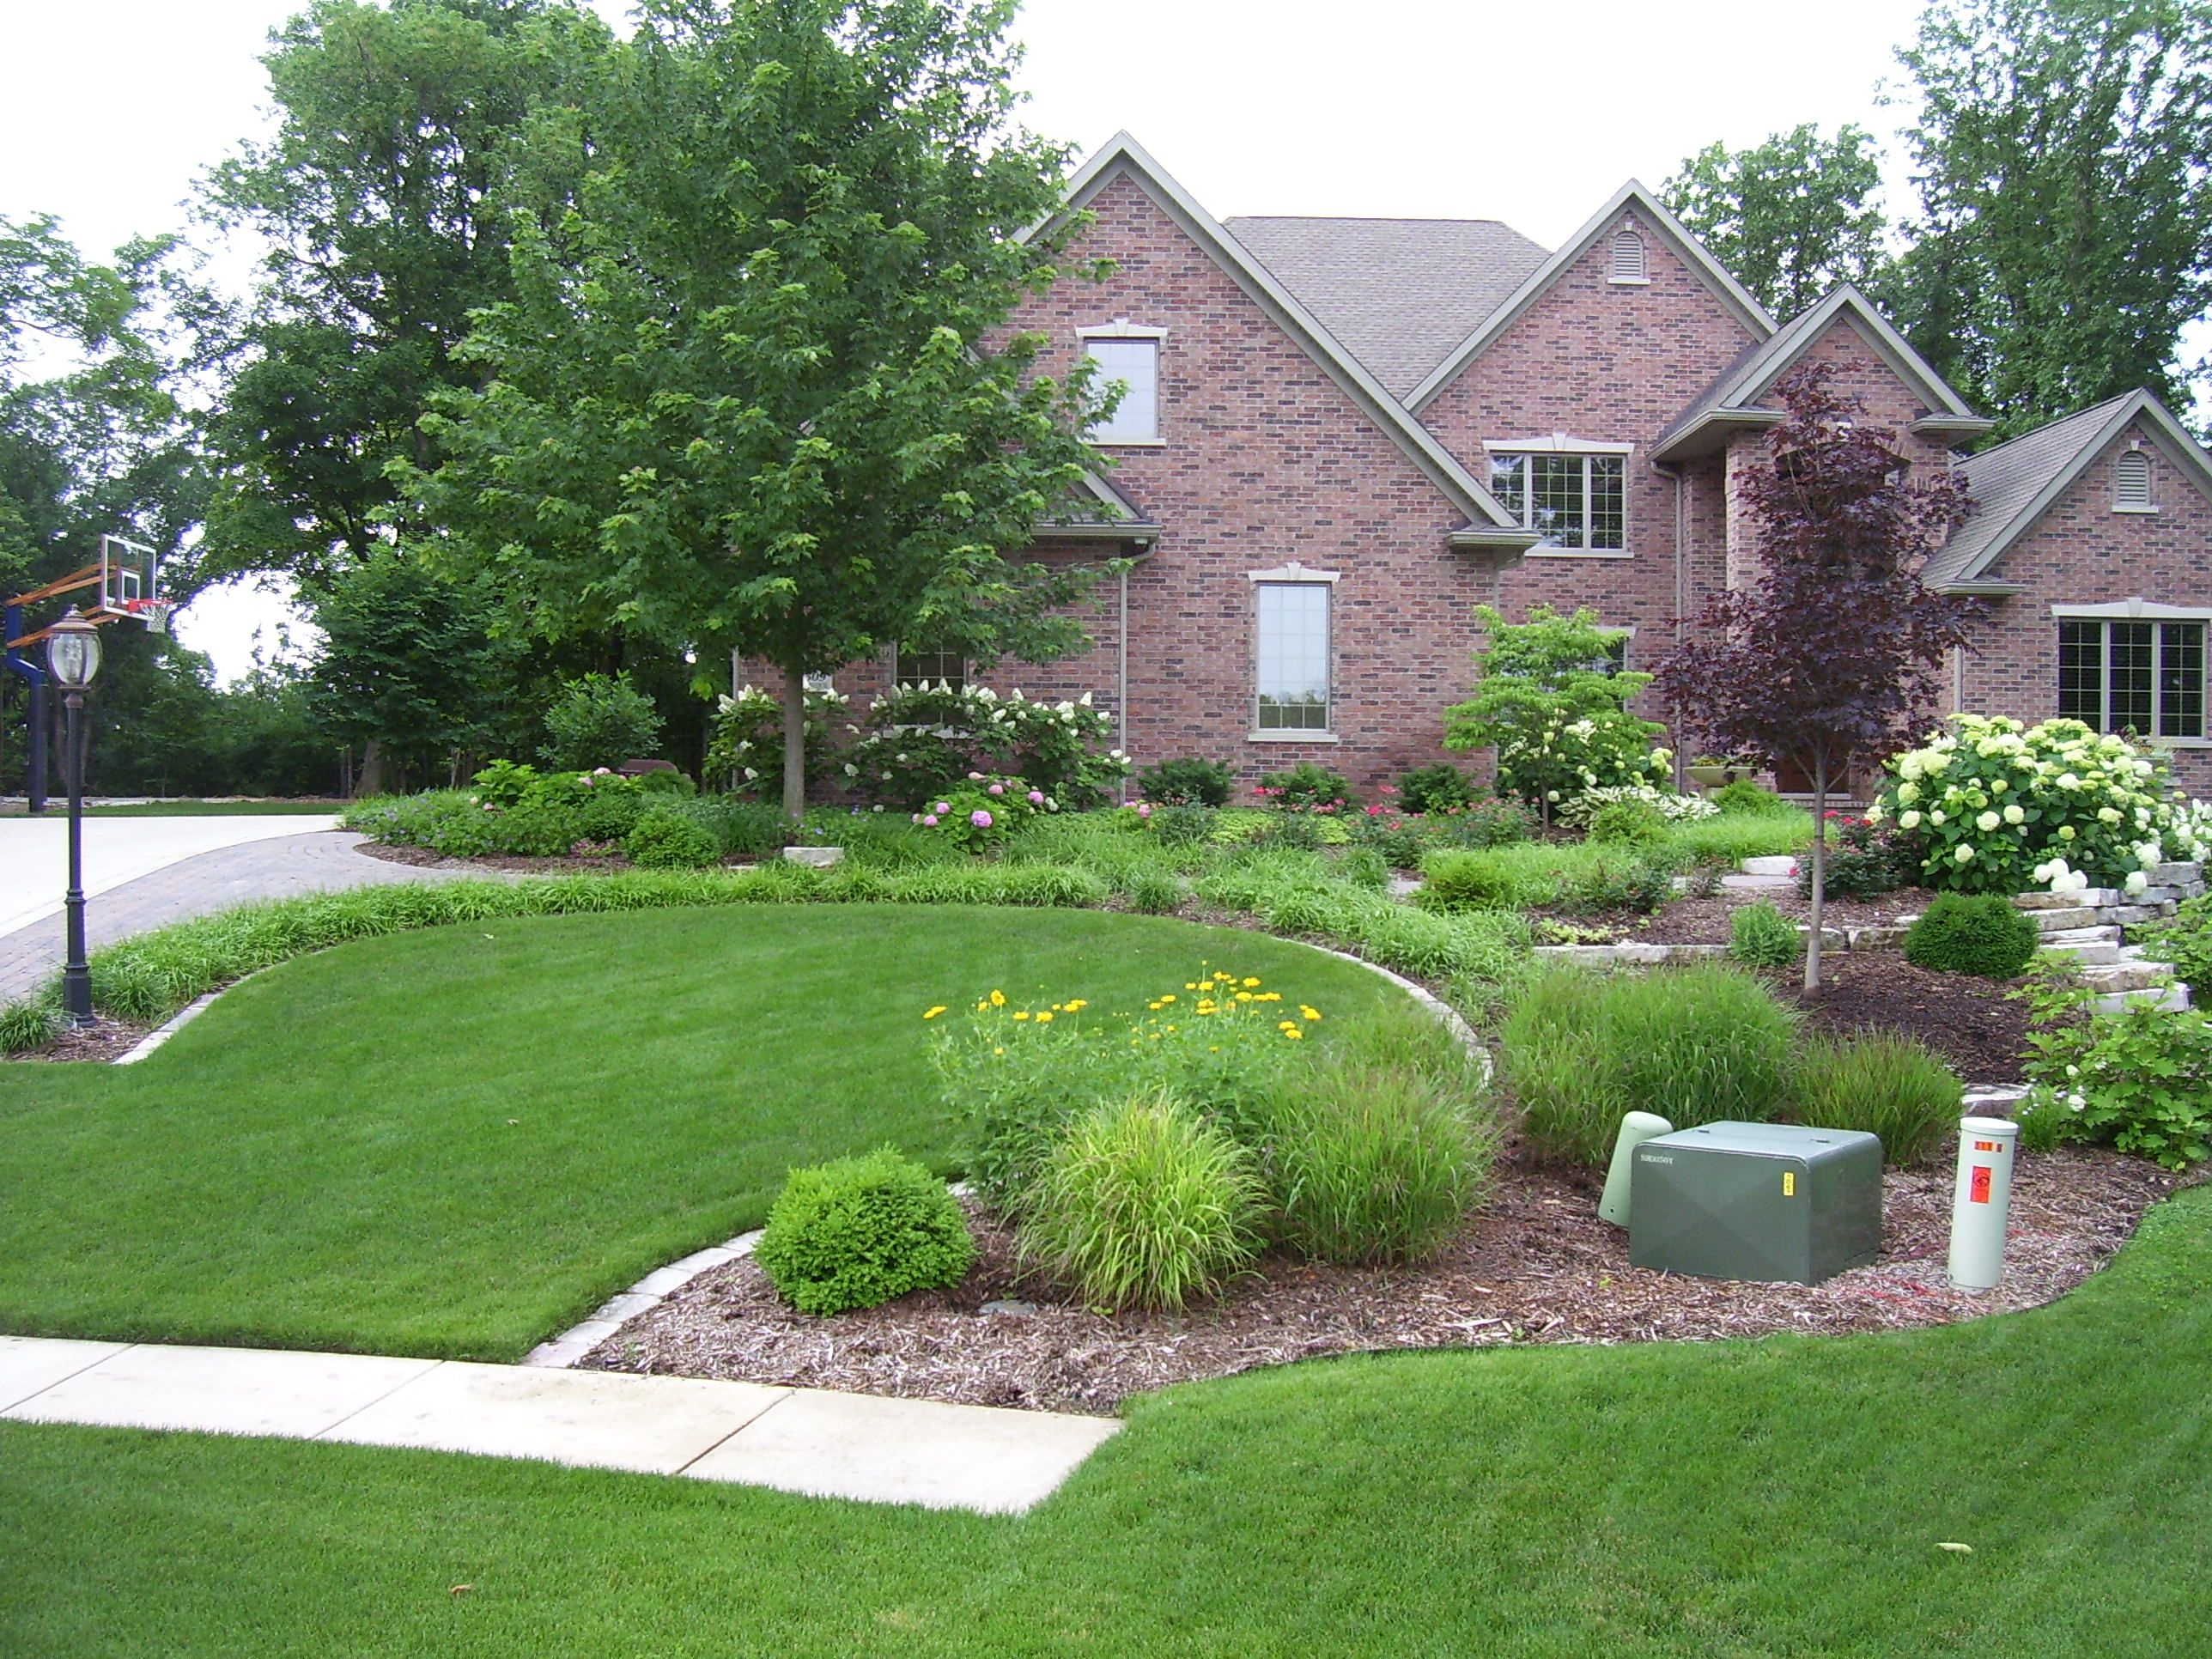 front landscaping-easement distraction | Front landscaping ...